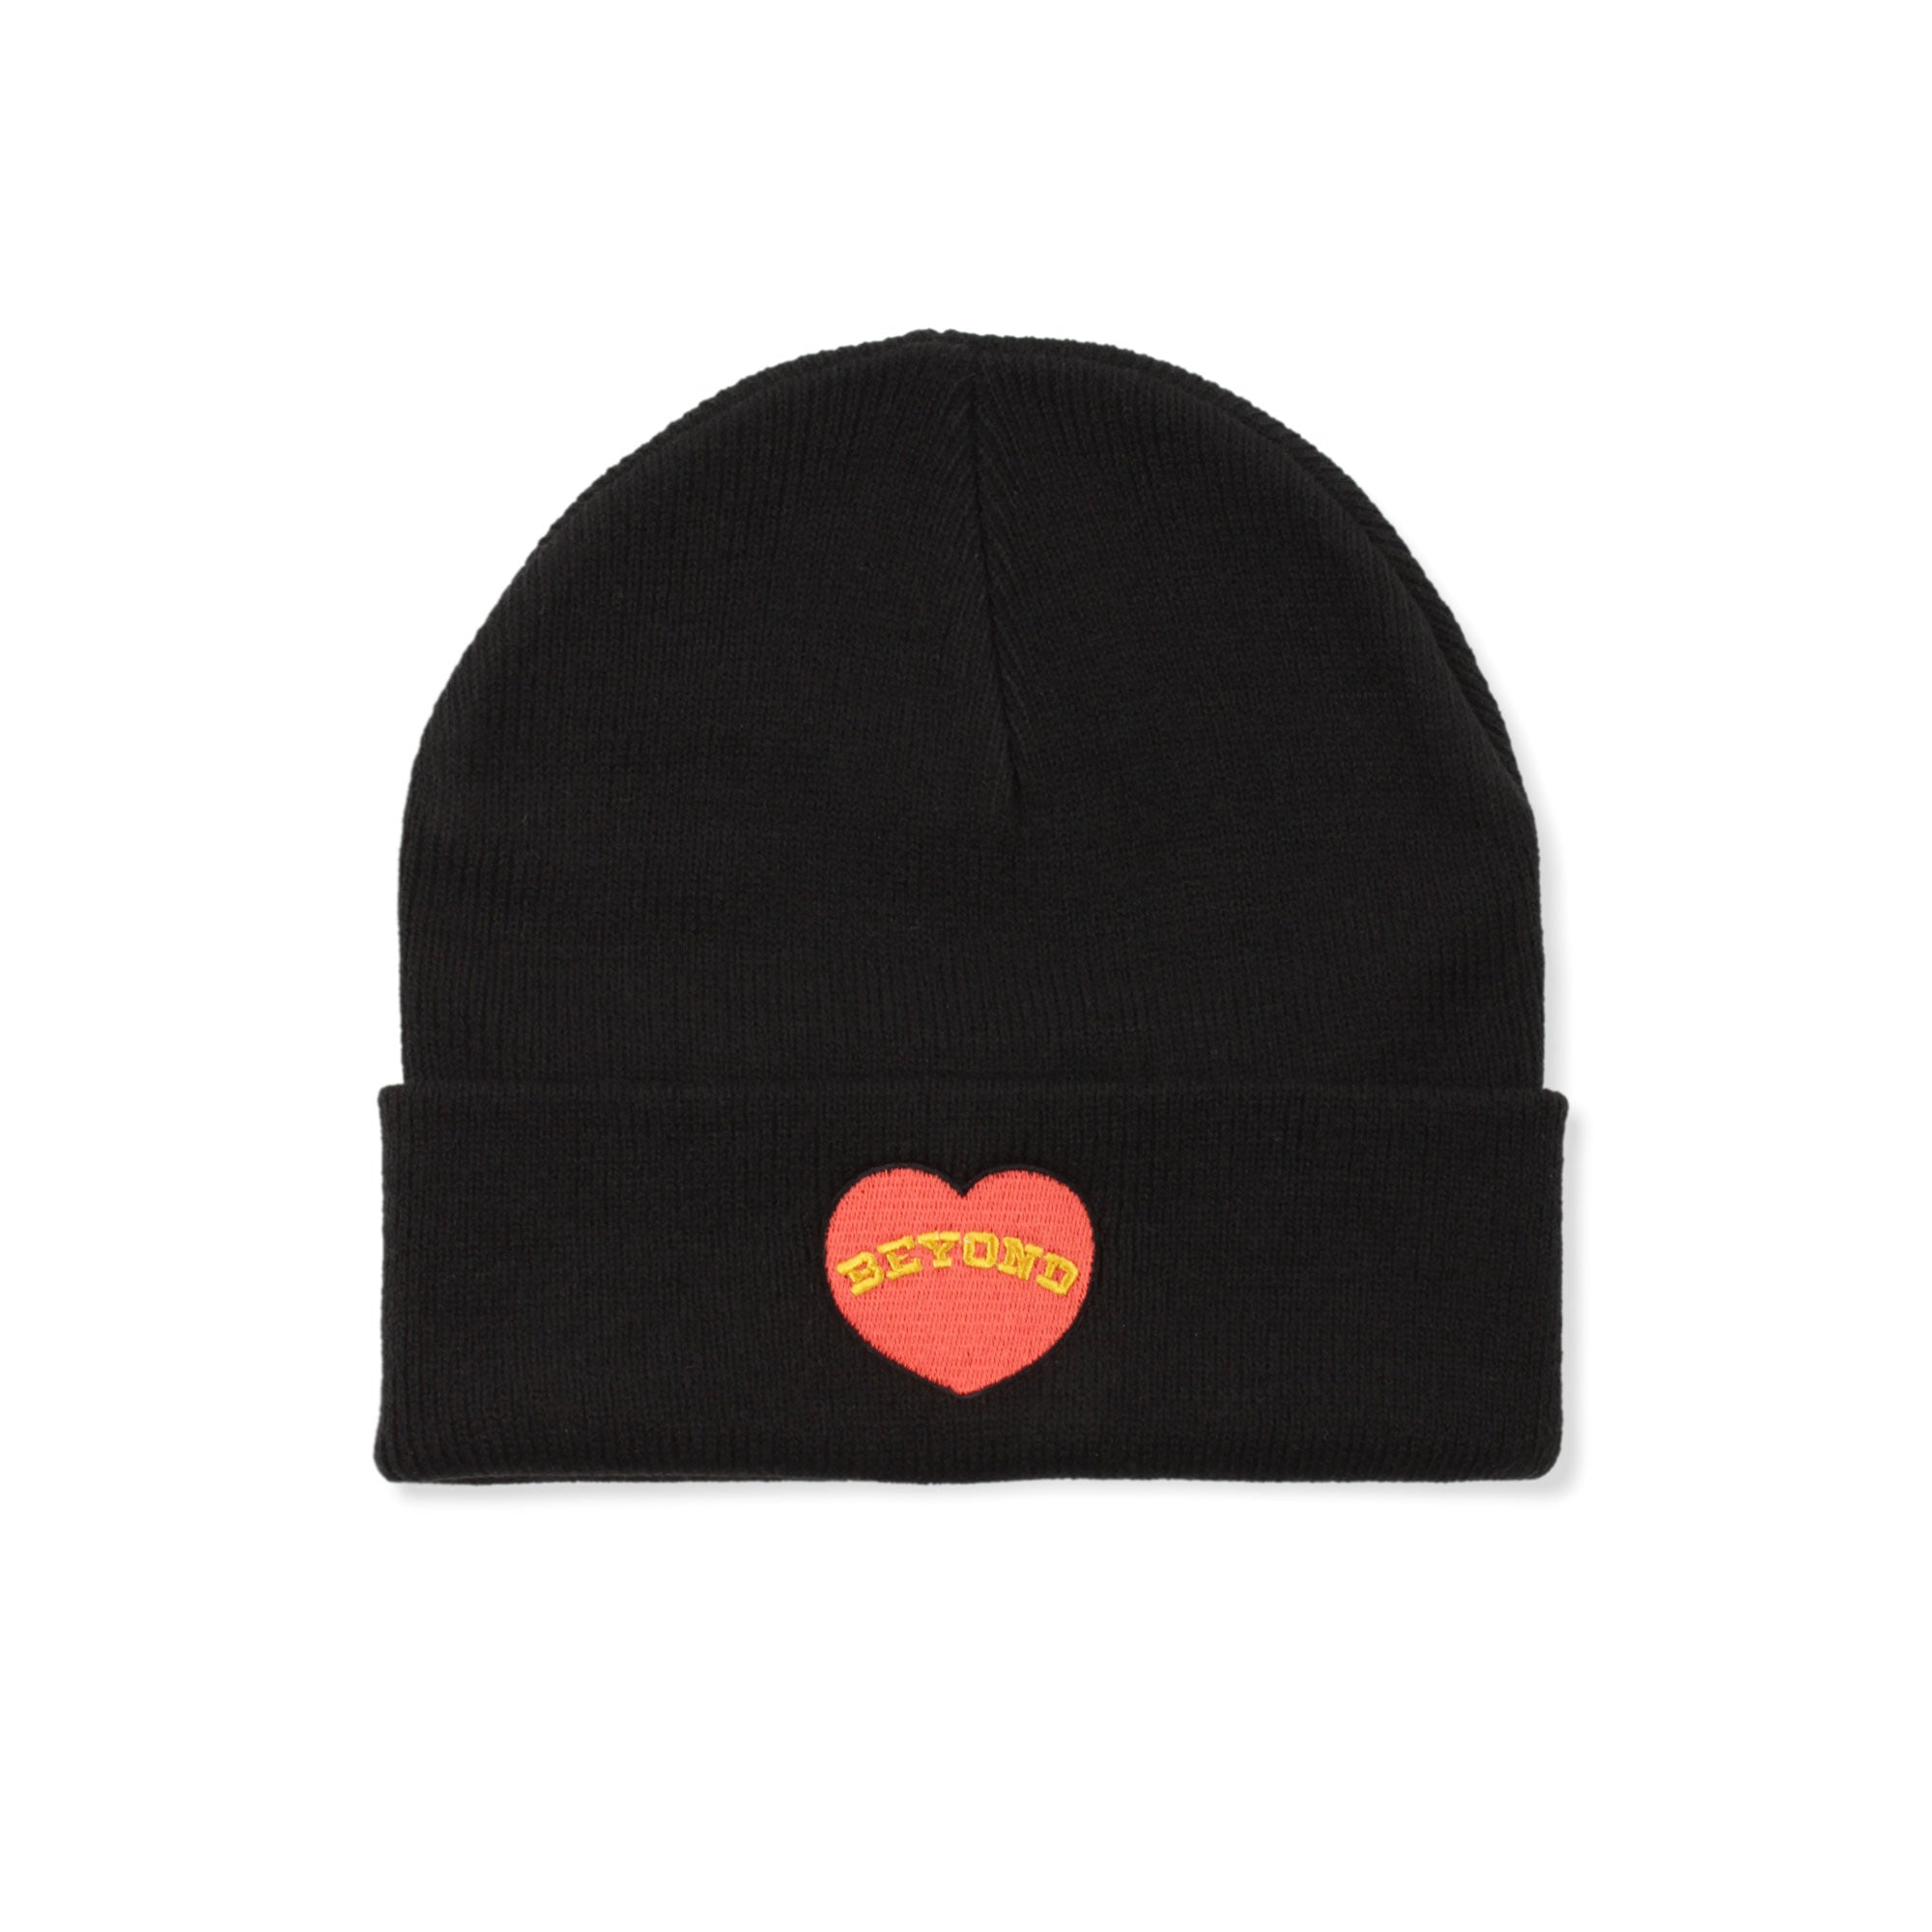 Beyond Love My Beanie Product Photo #1